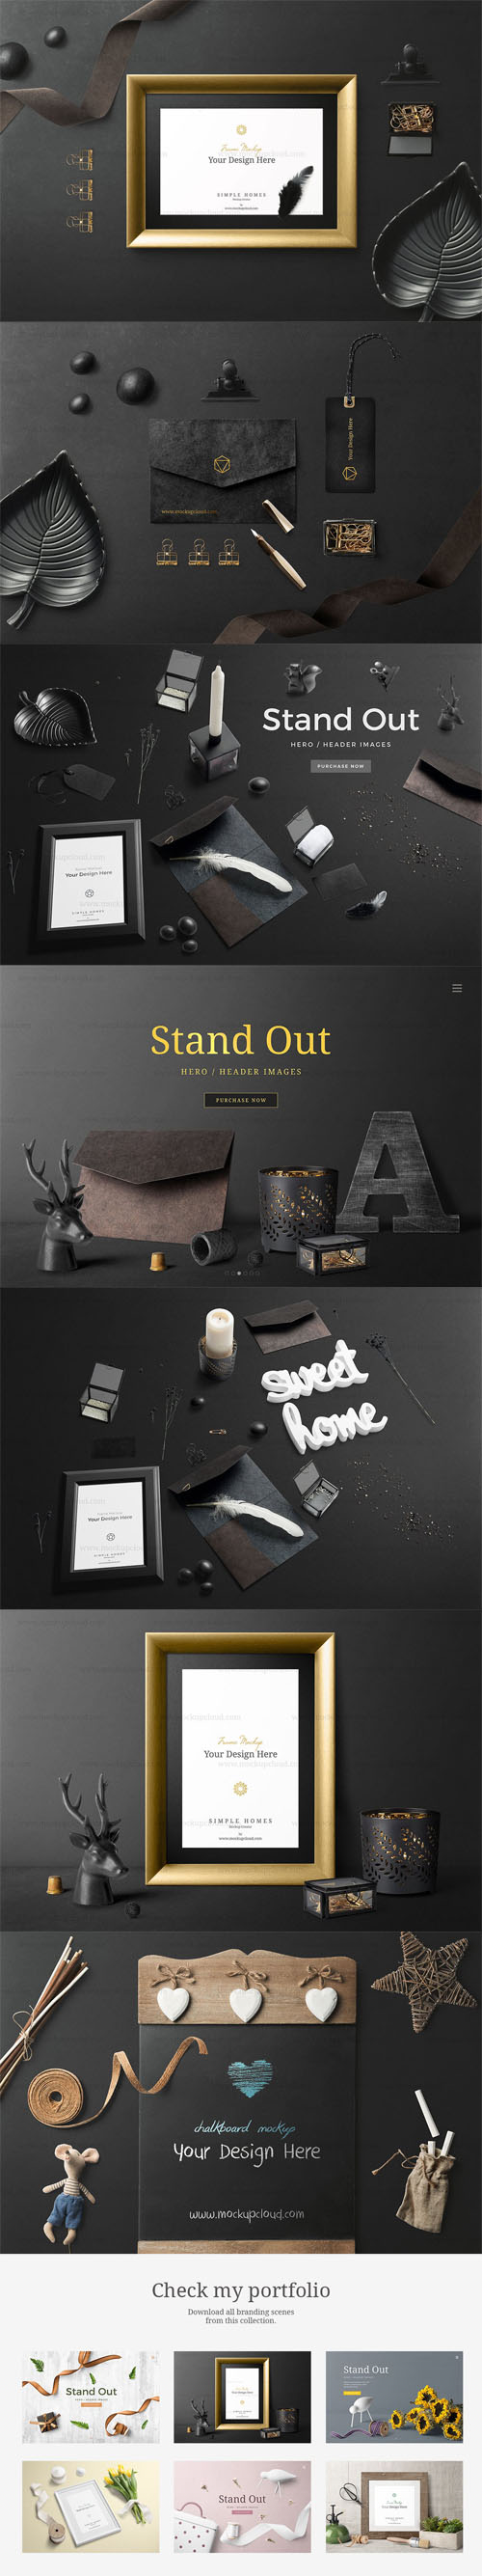 PSD Simple Homes Mockup Vol. 6